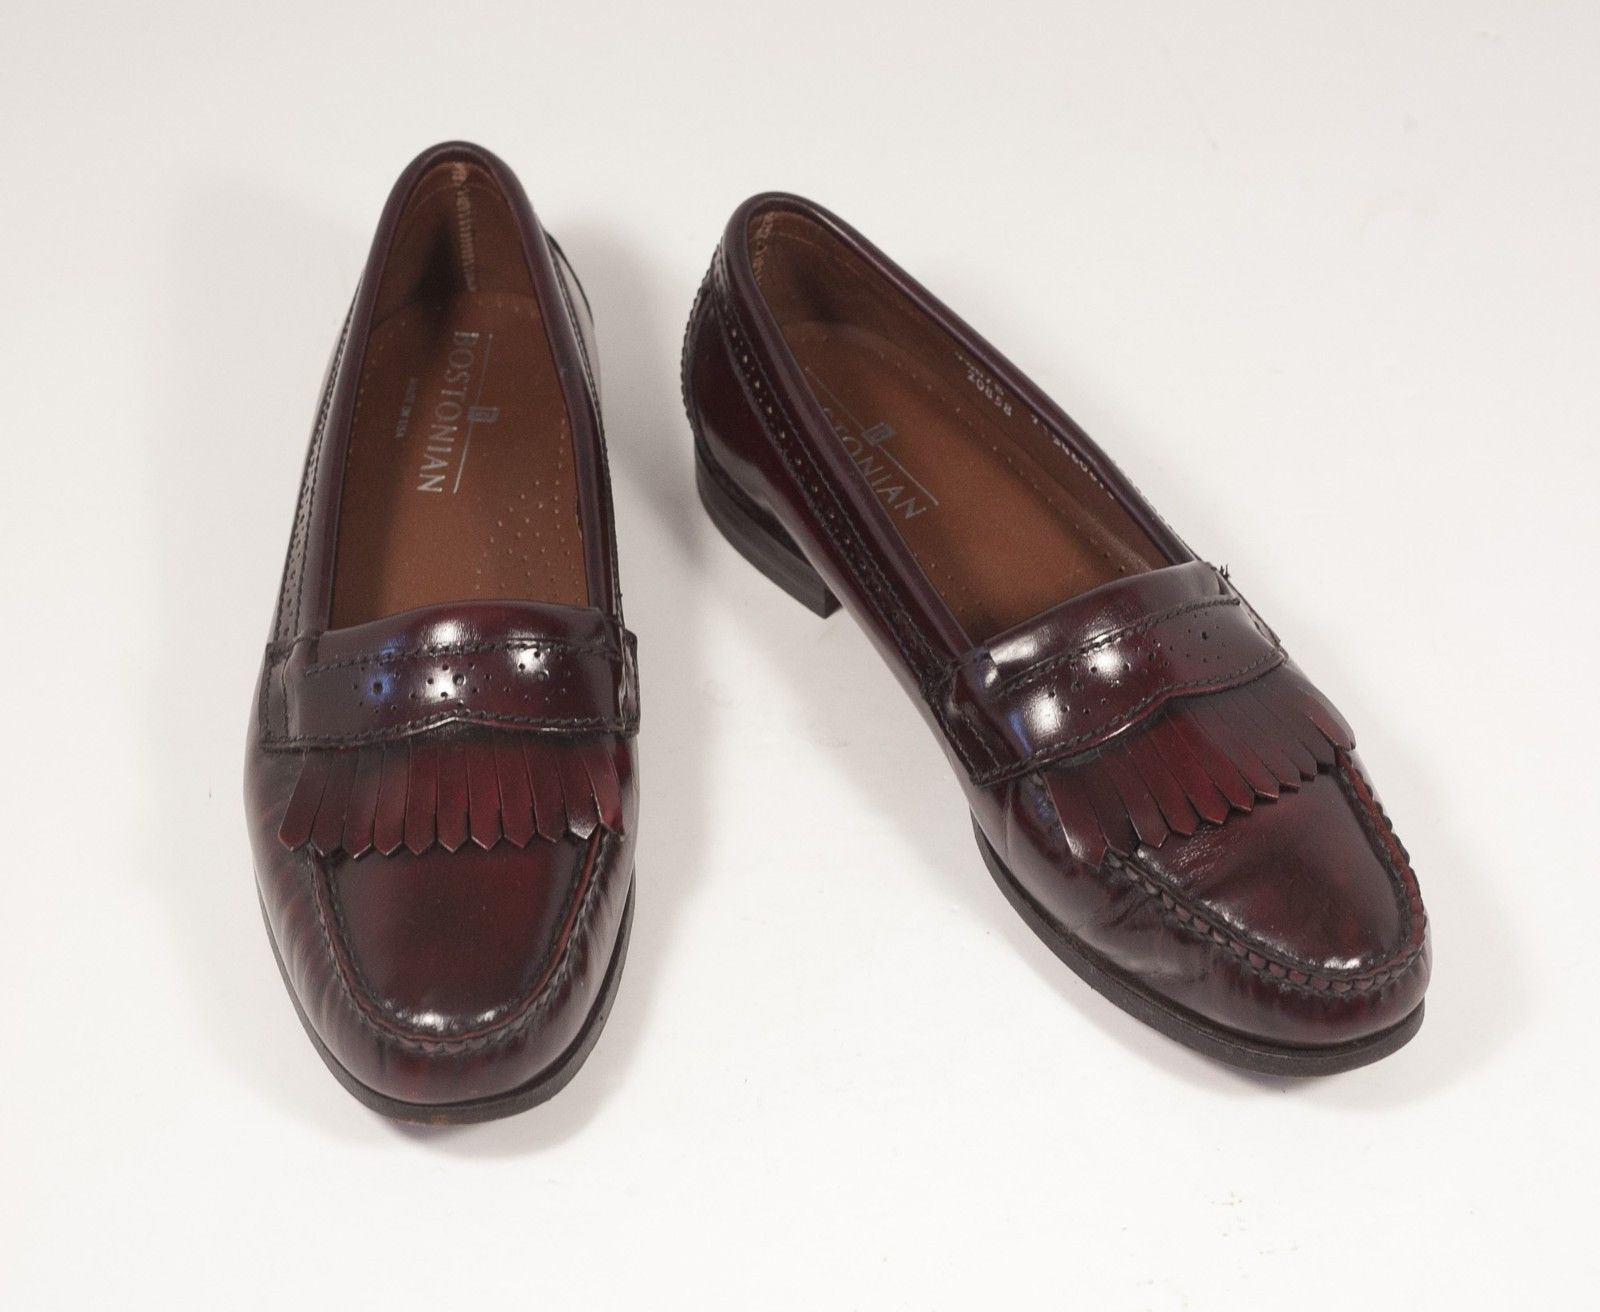 58a1310c5d7 Bostonian 9.5 Burgundy Loafers Kiltie and 40 similar items. 57